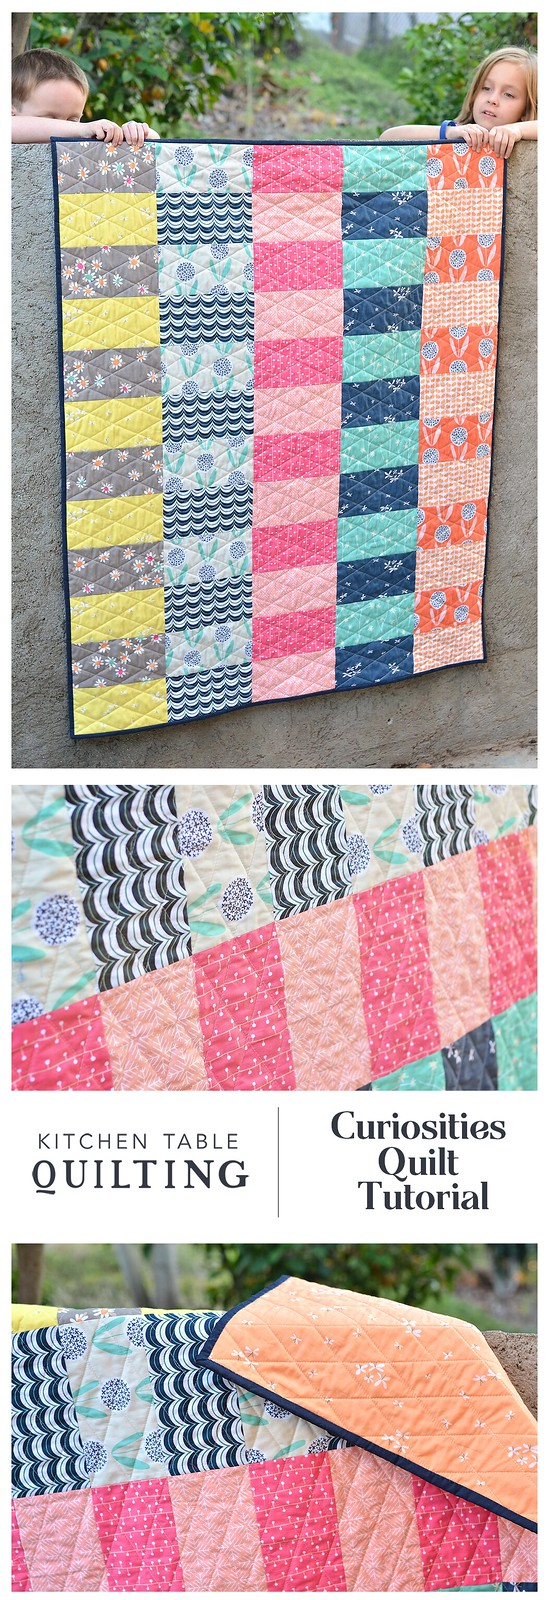 Super Simple Curiosities Tutorial - Kitchen Table Quilting